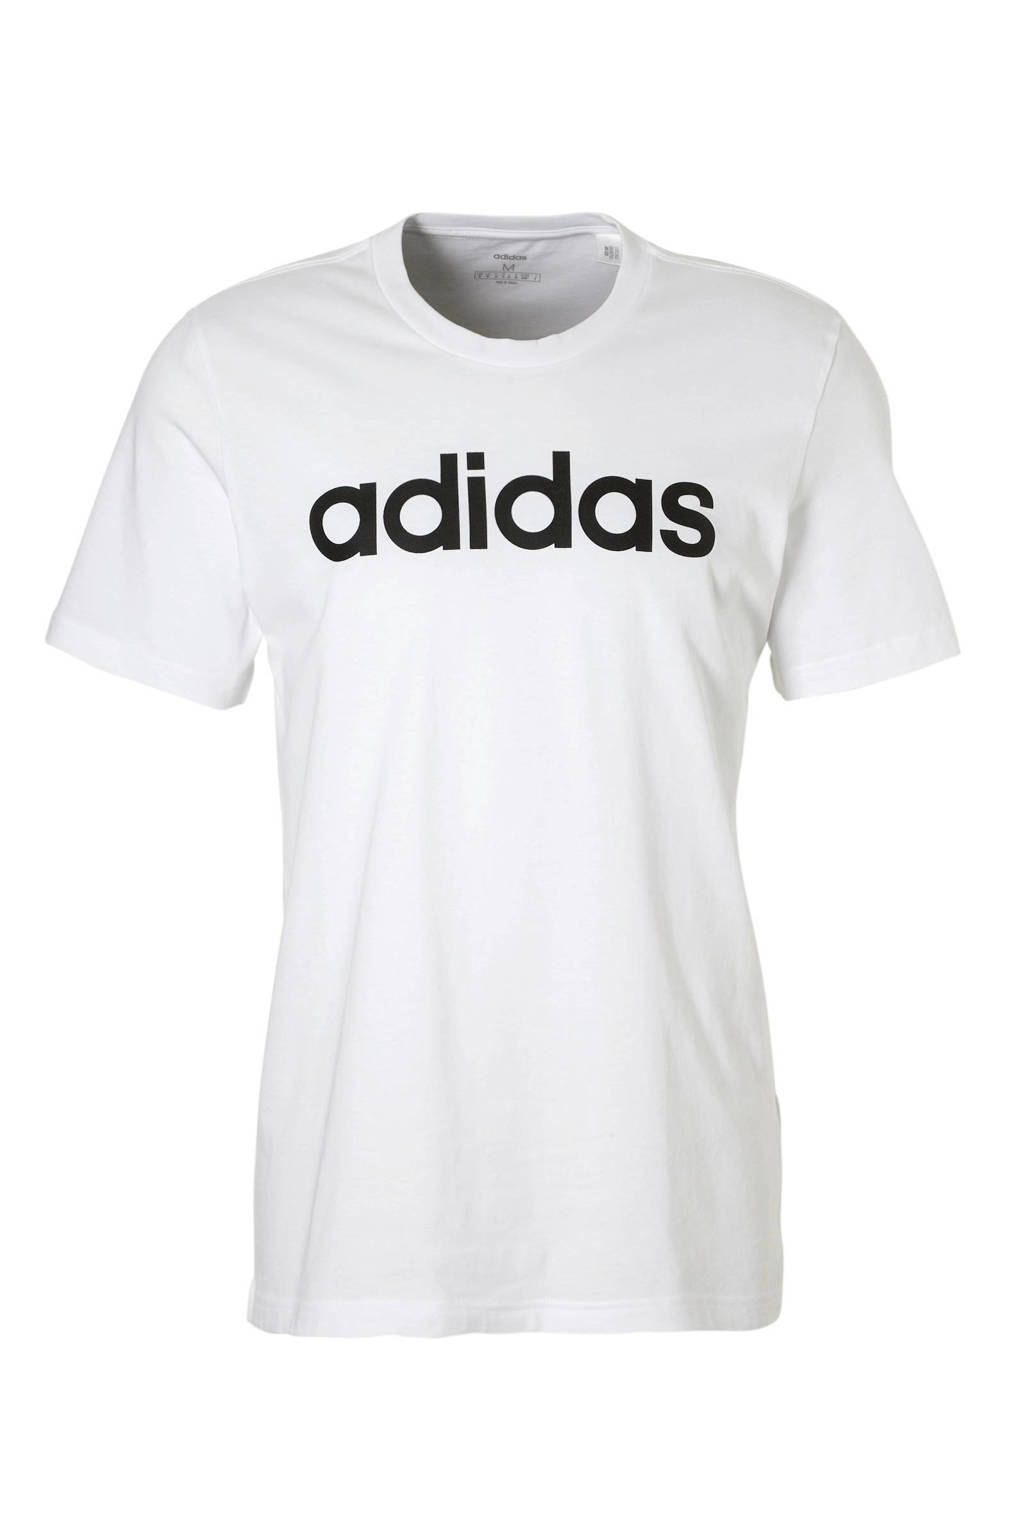 adidas Performance   sport T-shirt wit, Wit/zwart